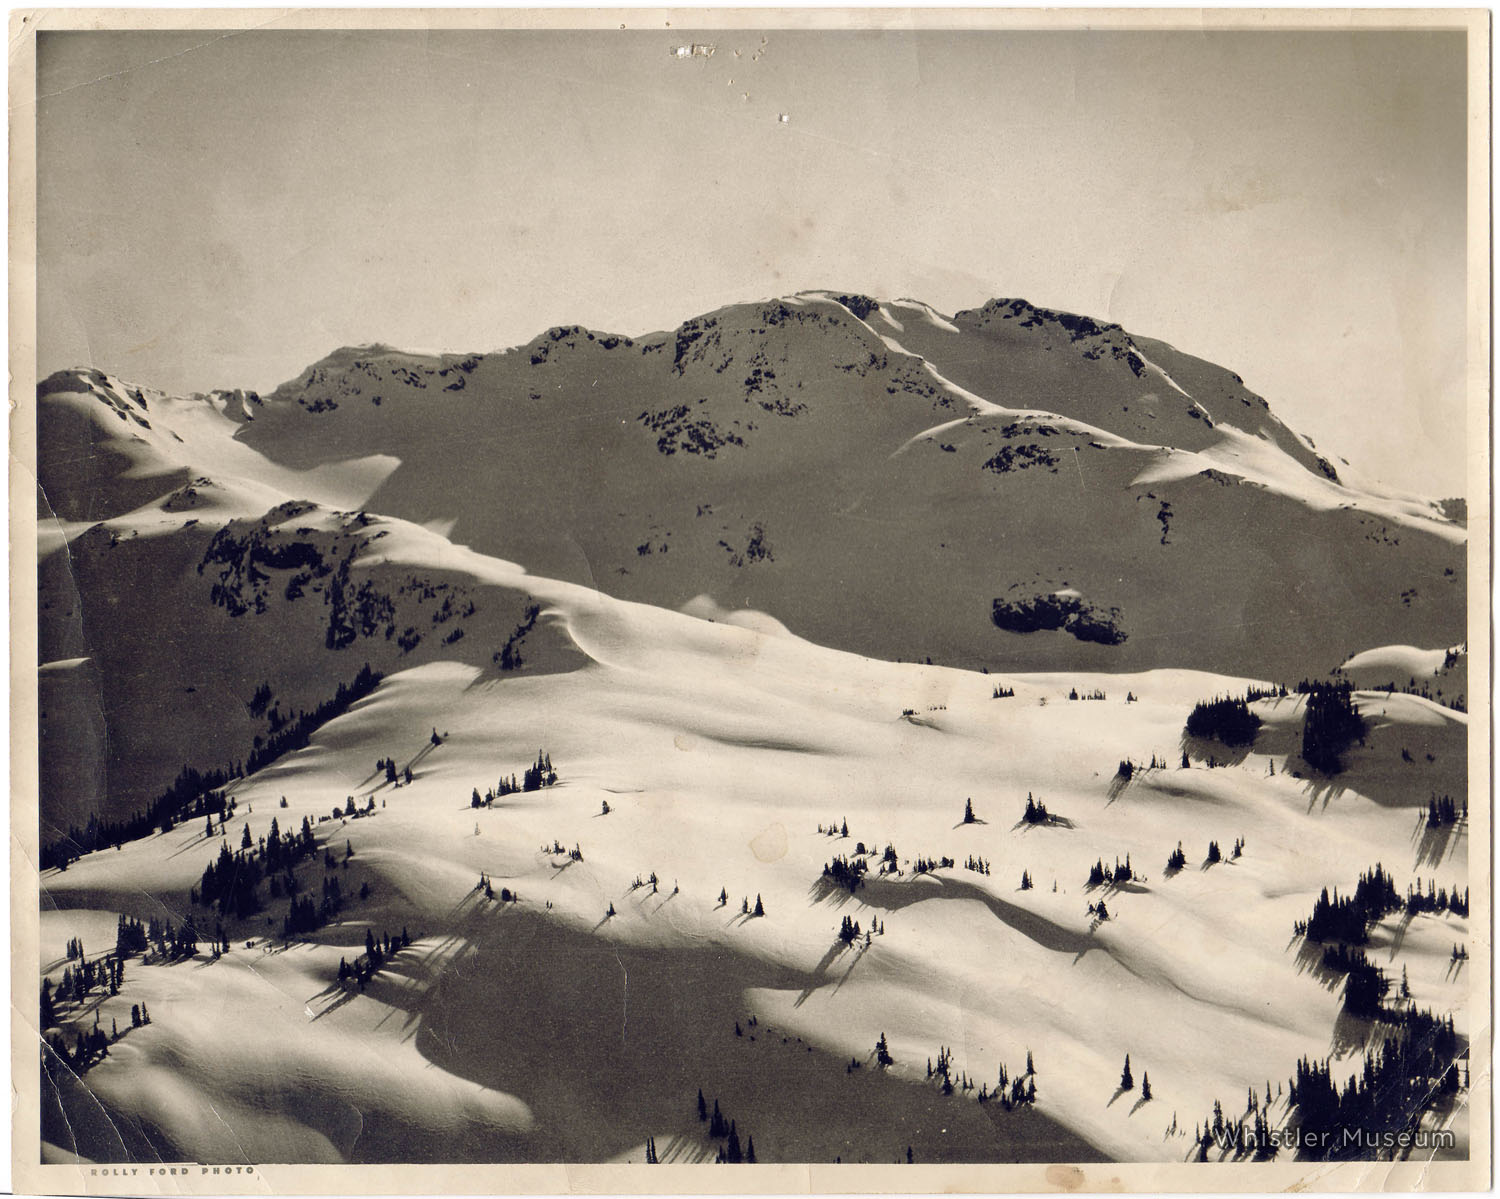 Whistler Mountain in the early 1960s, before backcountry became frontcountry. Sure, the chairlifts, groomer, gondolas, lodges, snowmaking and so on have been great, but doesn't this look like paradise?